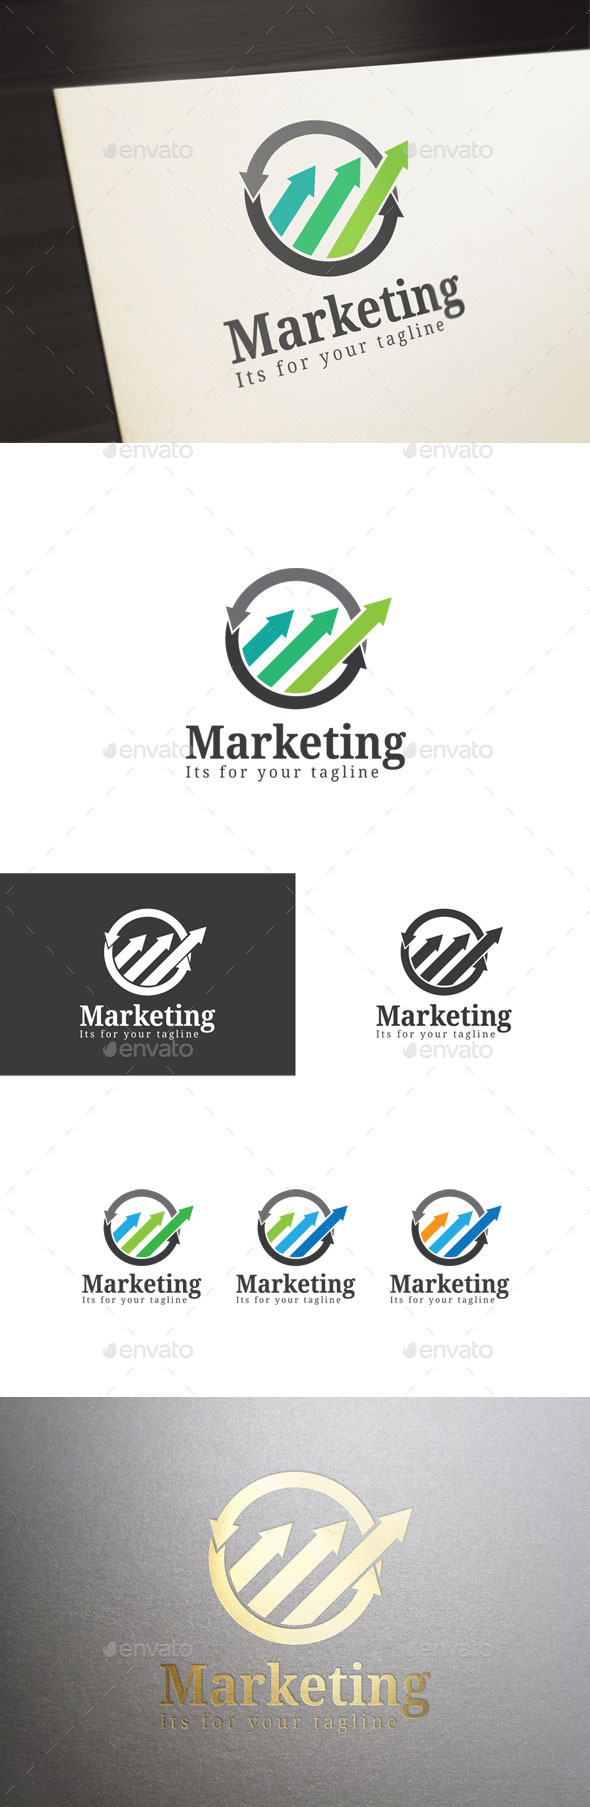 GraphicRiver Marketing 11276998